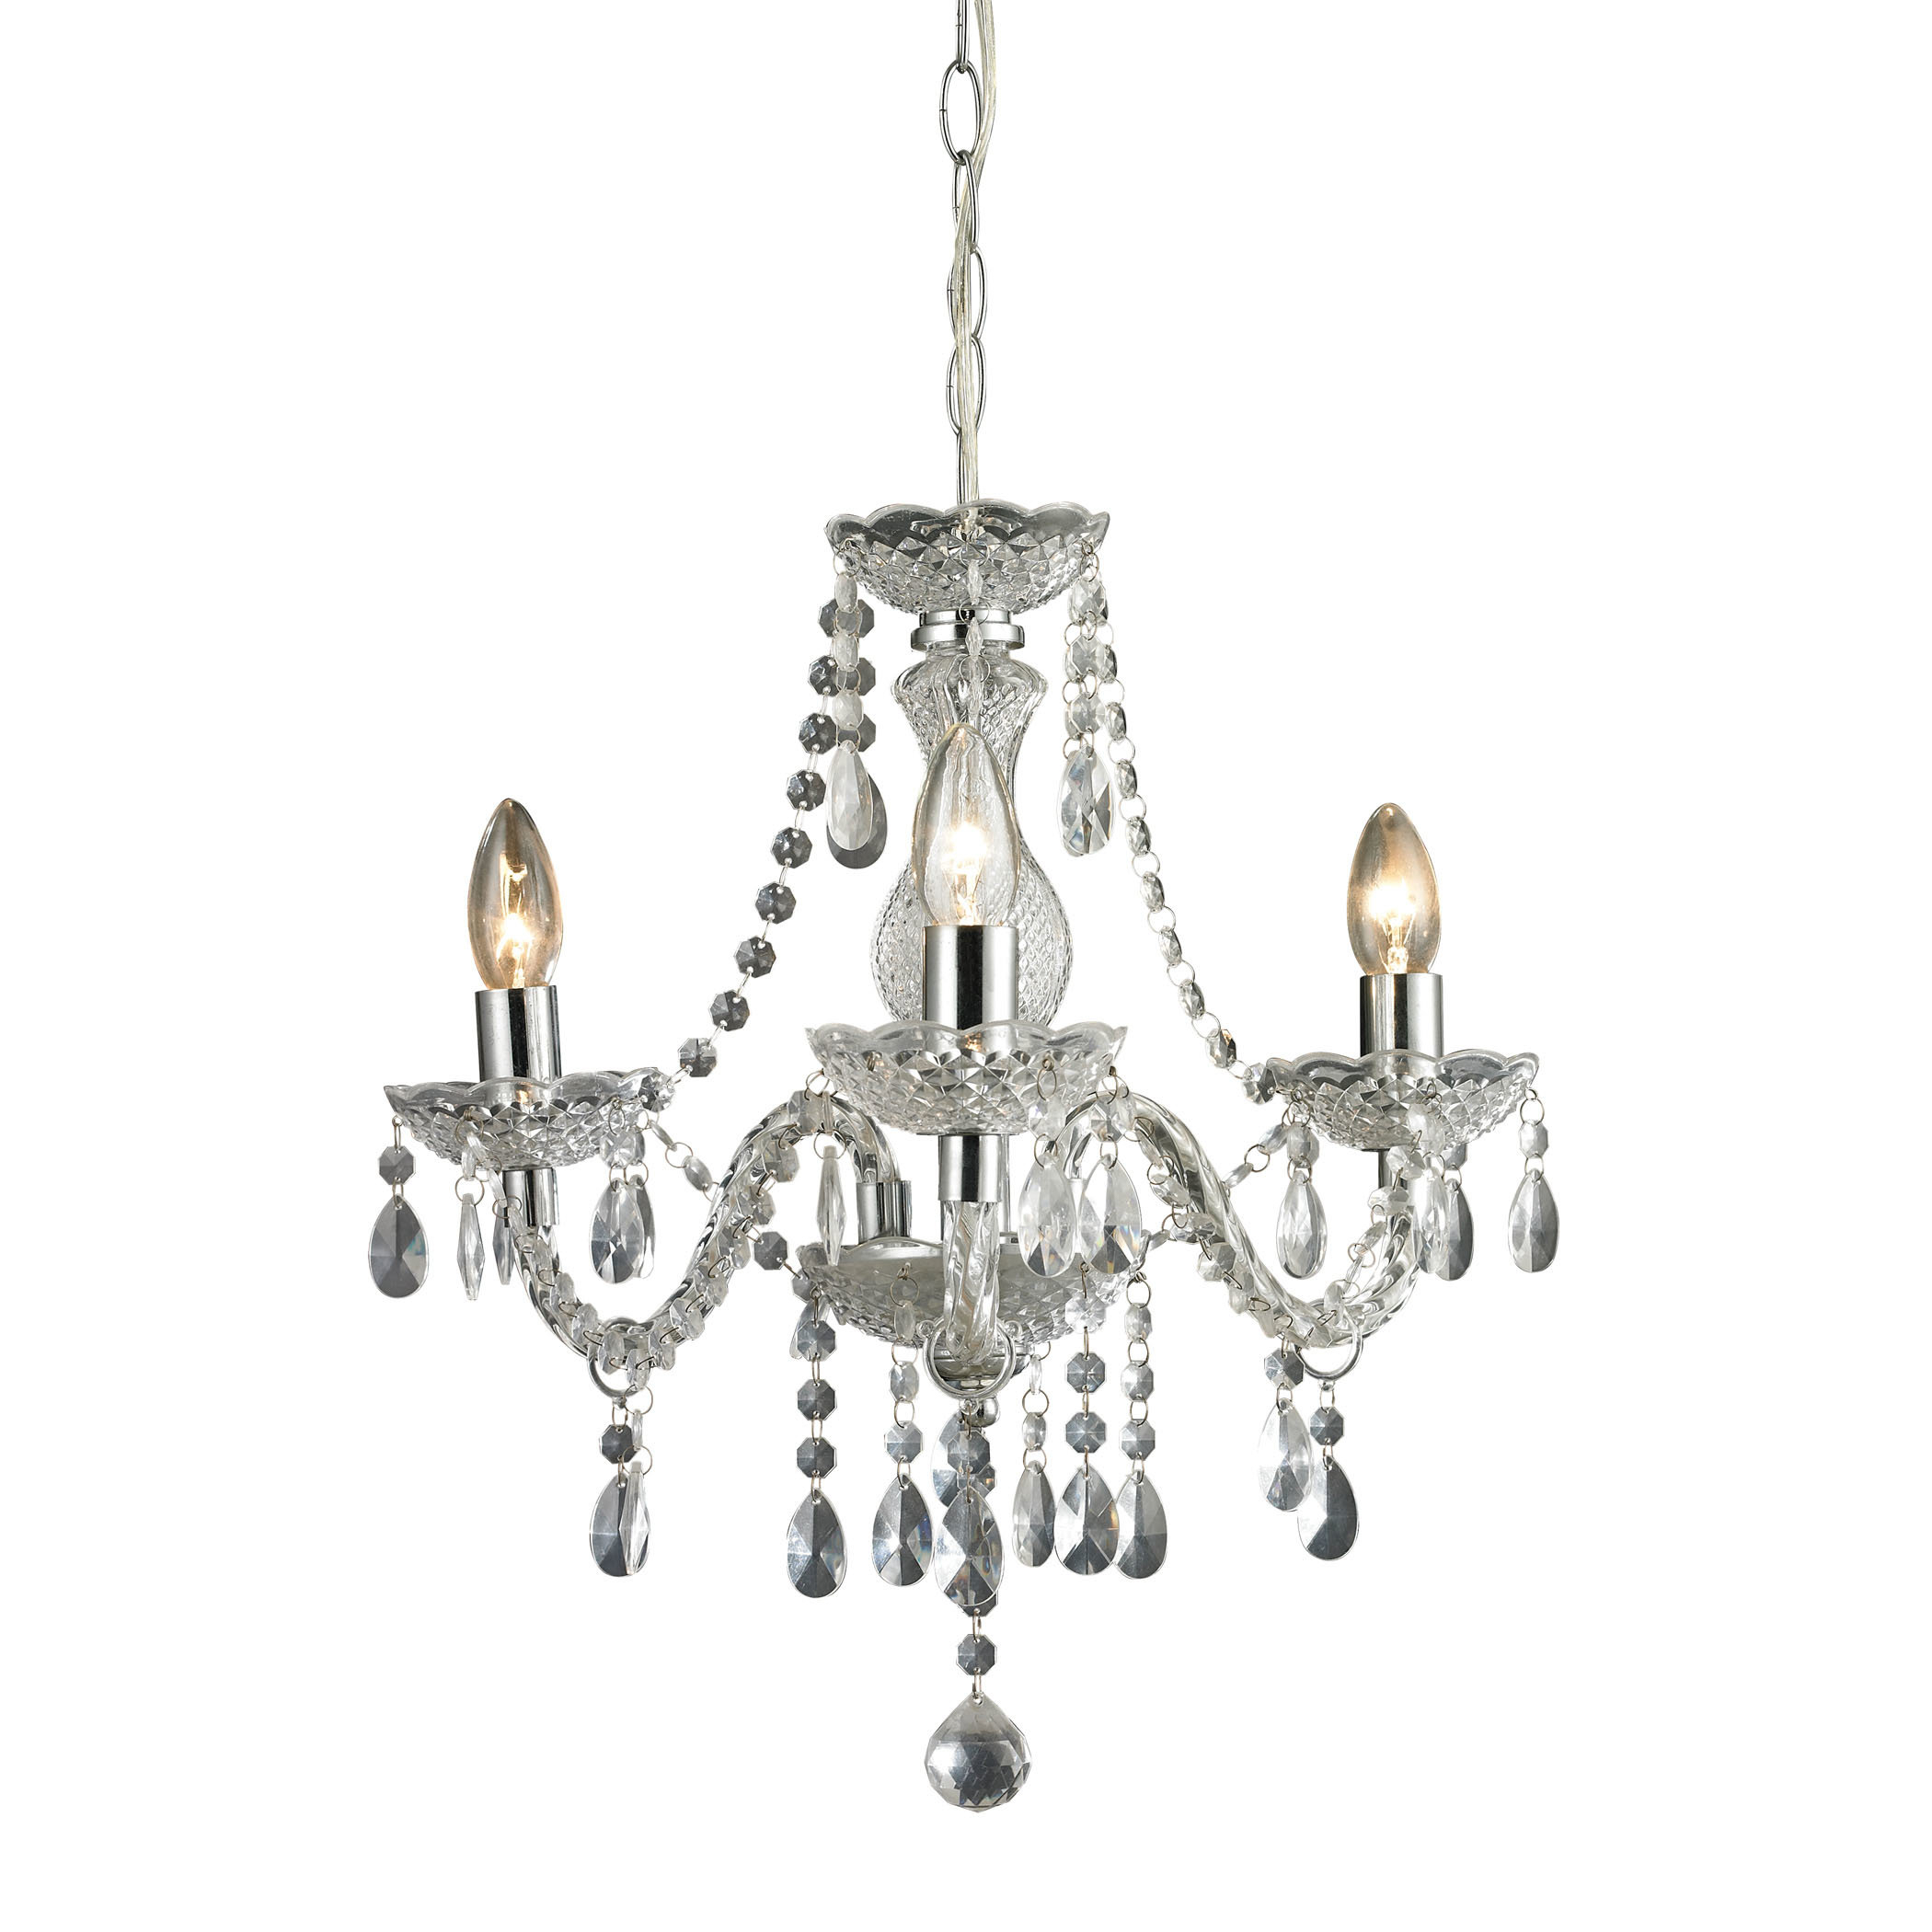 Gilson 3-Light Candle Style Chandelier with Aldora 4-Light Candle Style Chandeliers (Image 22 of 30)